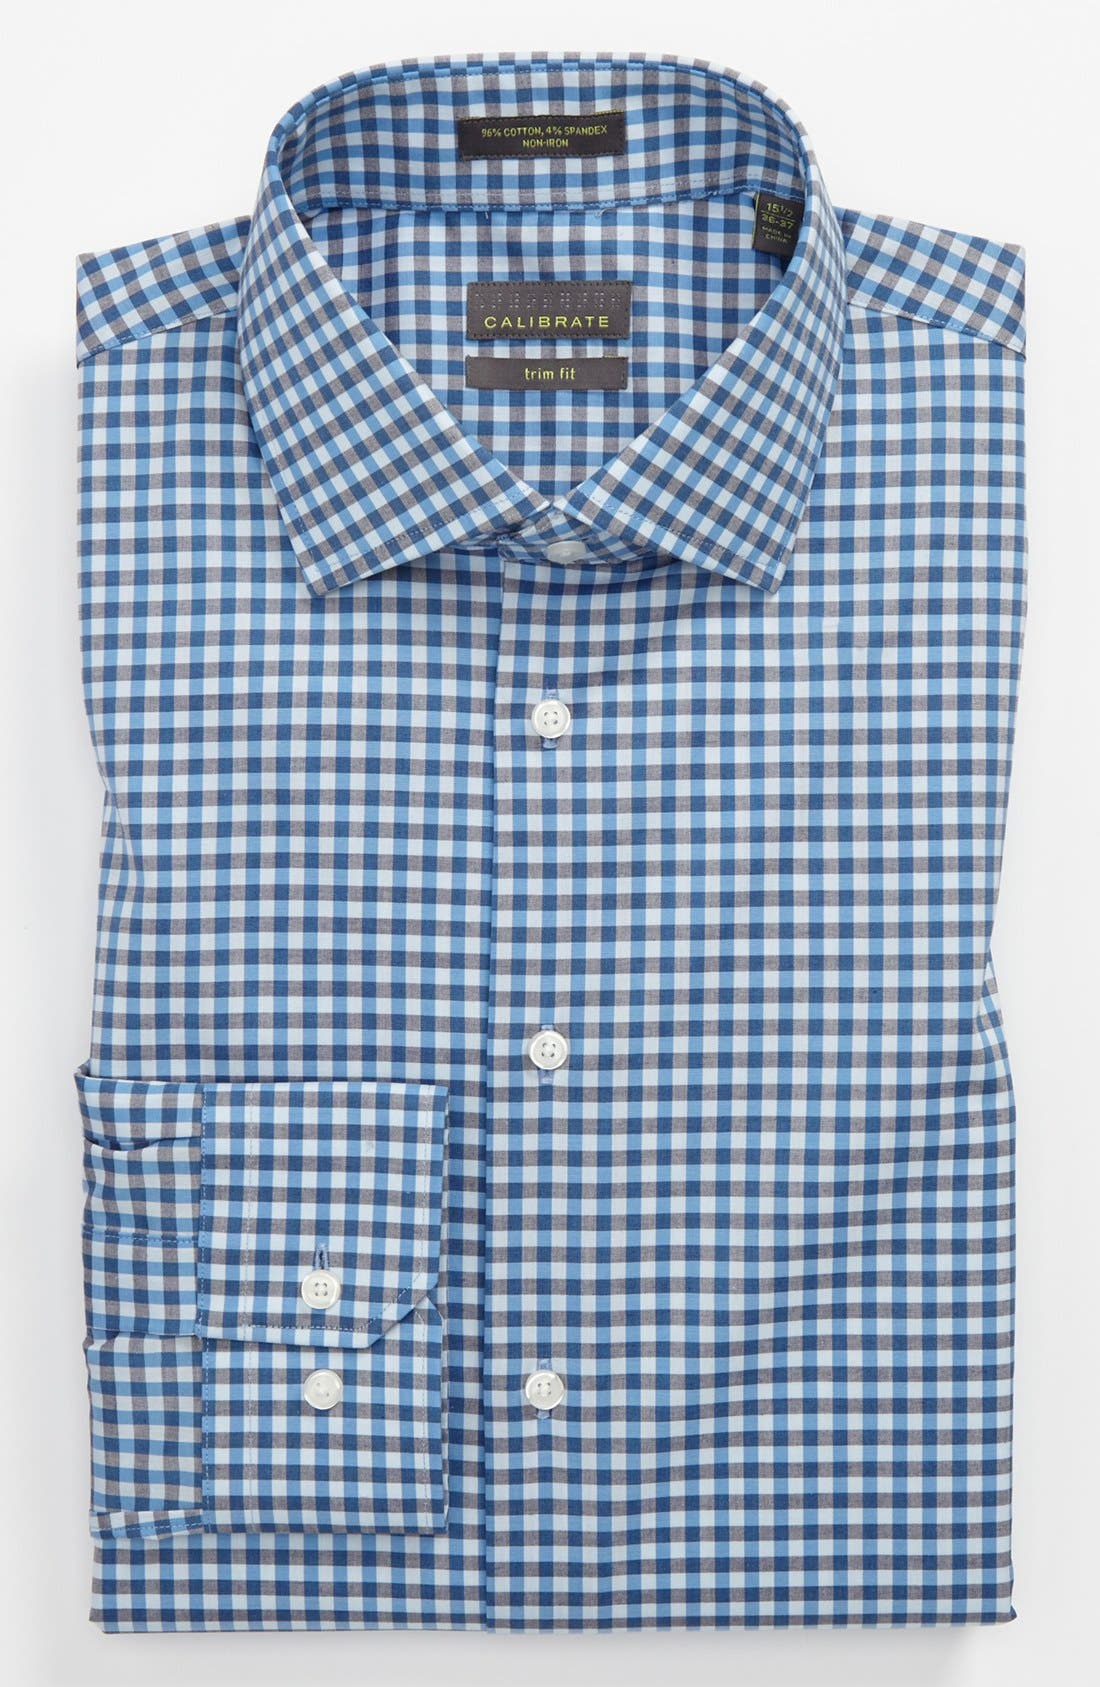 Main Image - Calibrate Trim Fit Dress Shirt